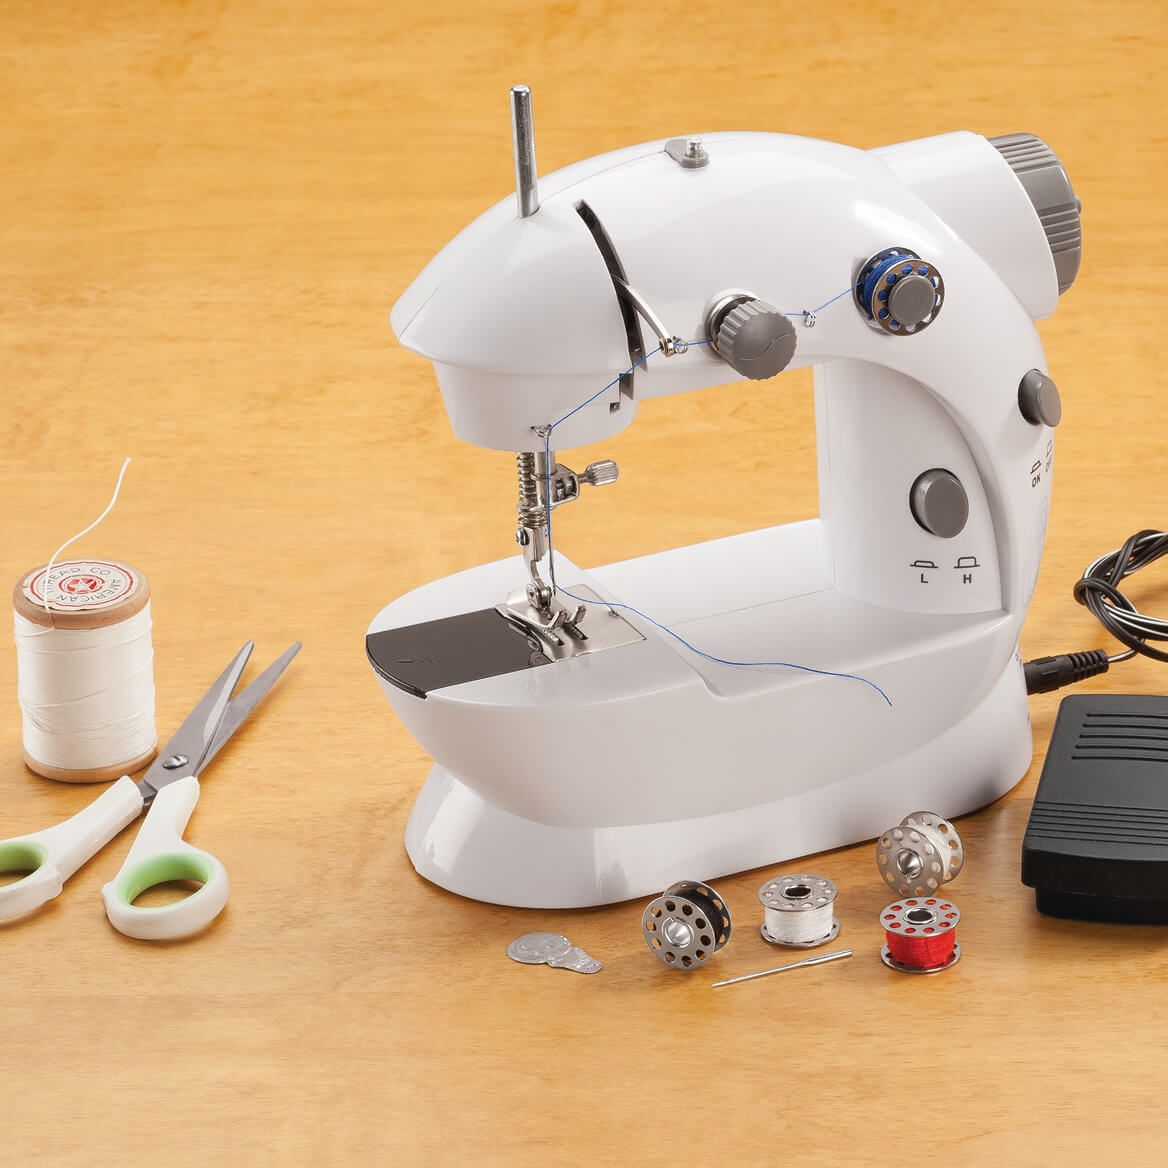 Compact Sewing Machine-348379